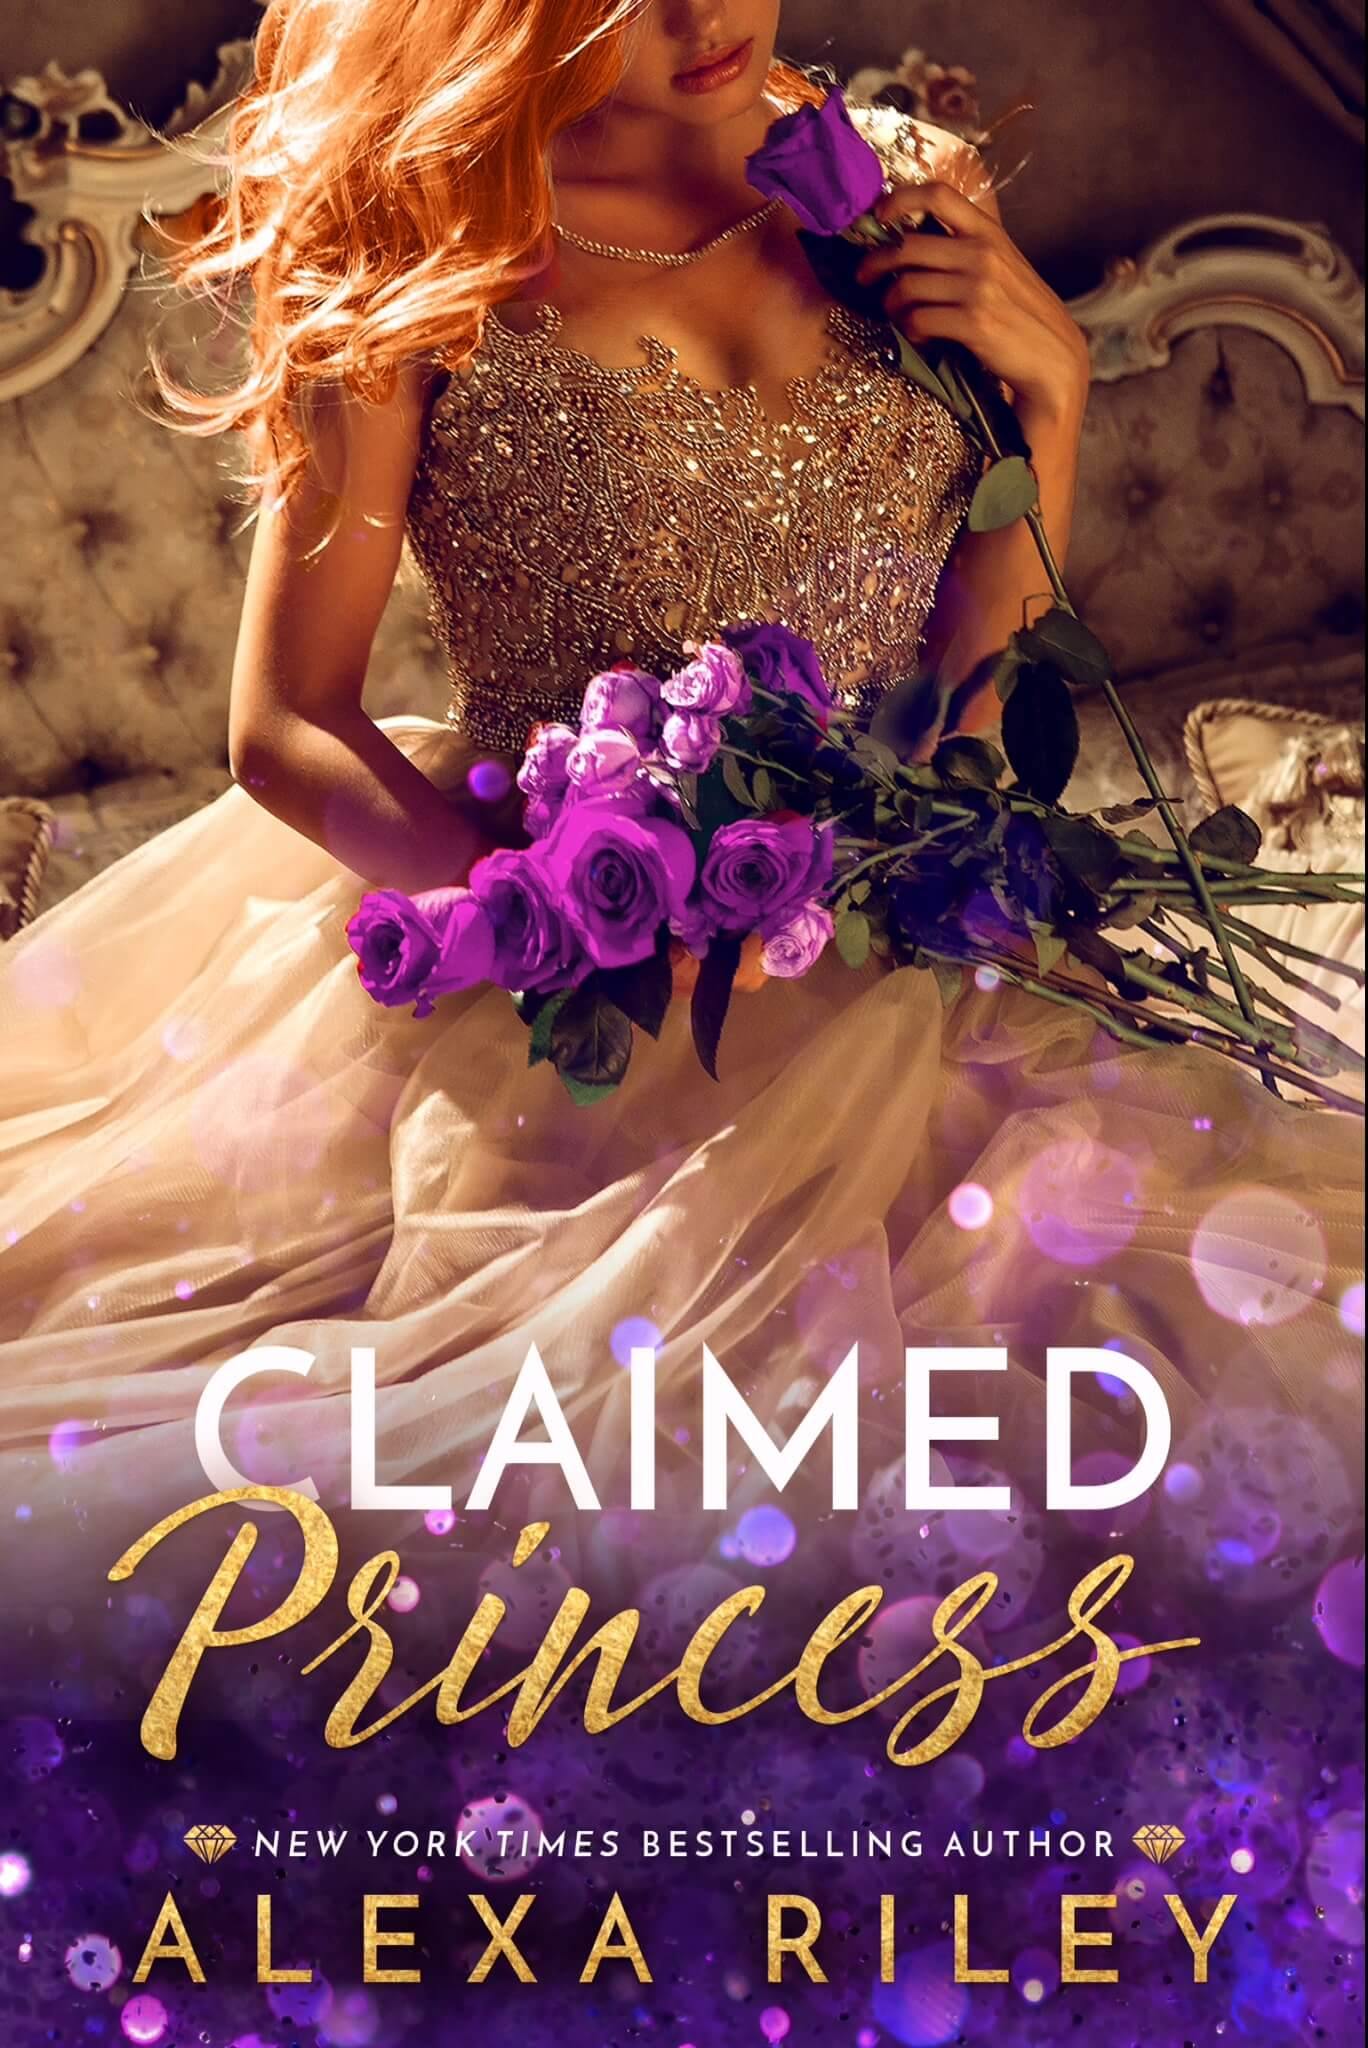 Claimed Princess by Alexa Riley